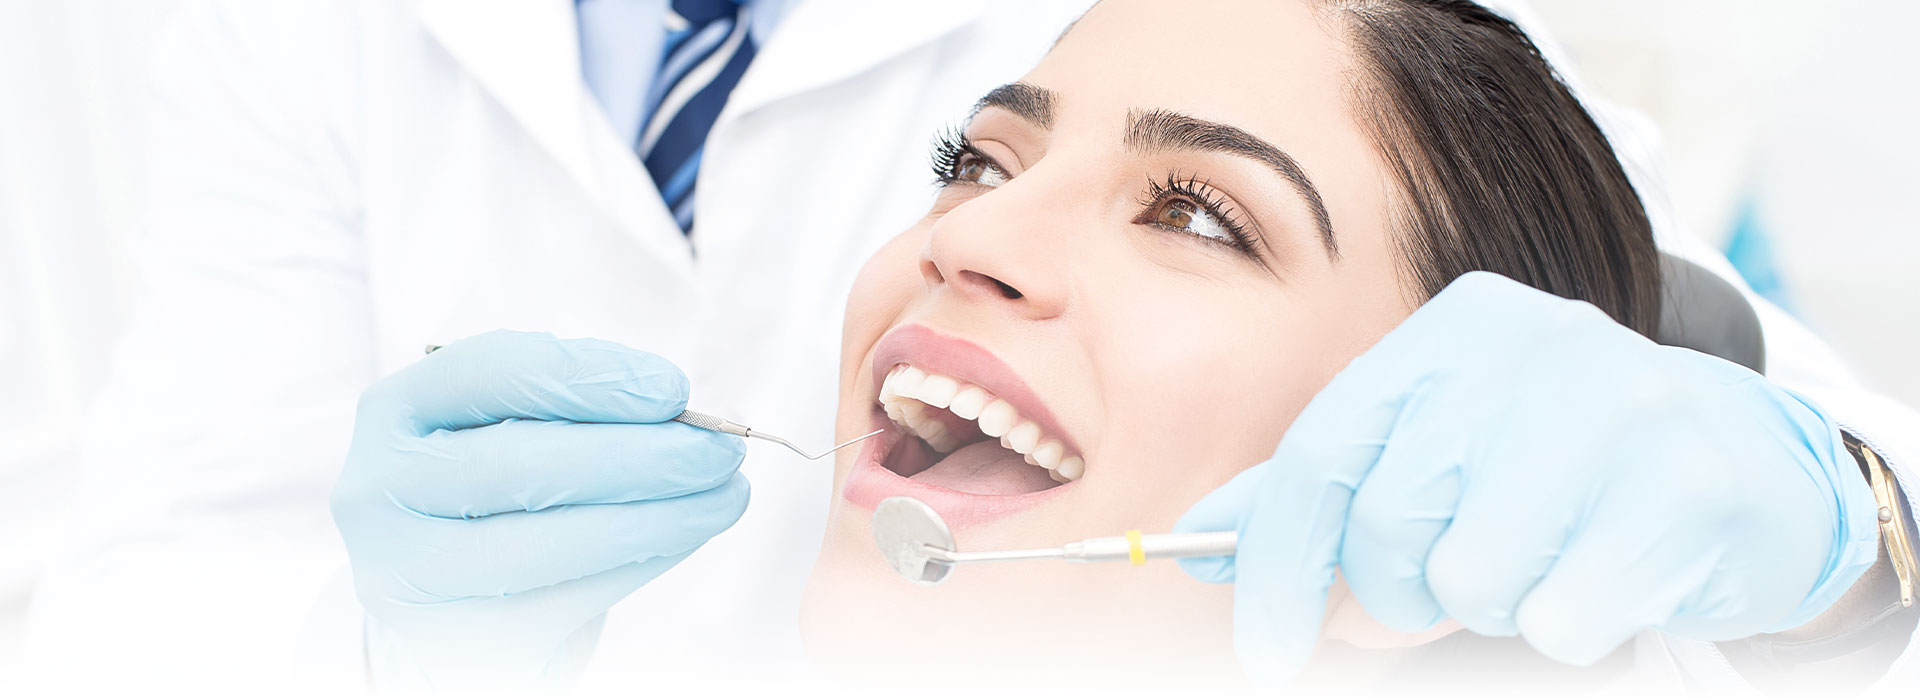 Woman smiling while having dental surgery at the crestwood dental group